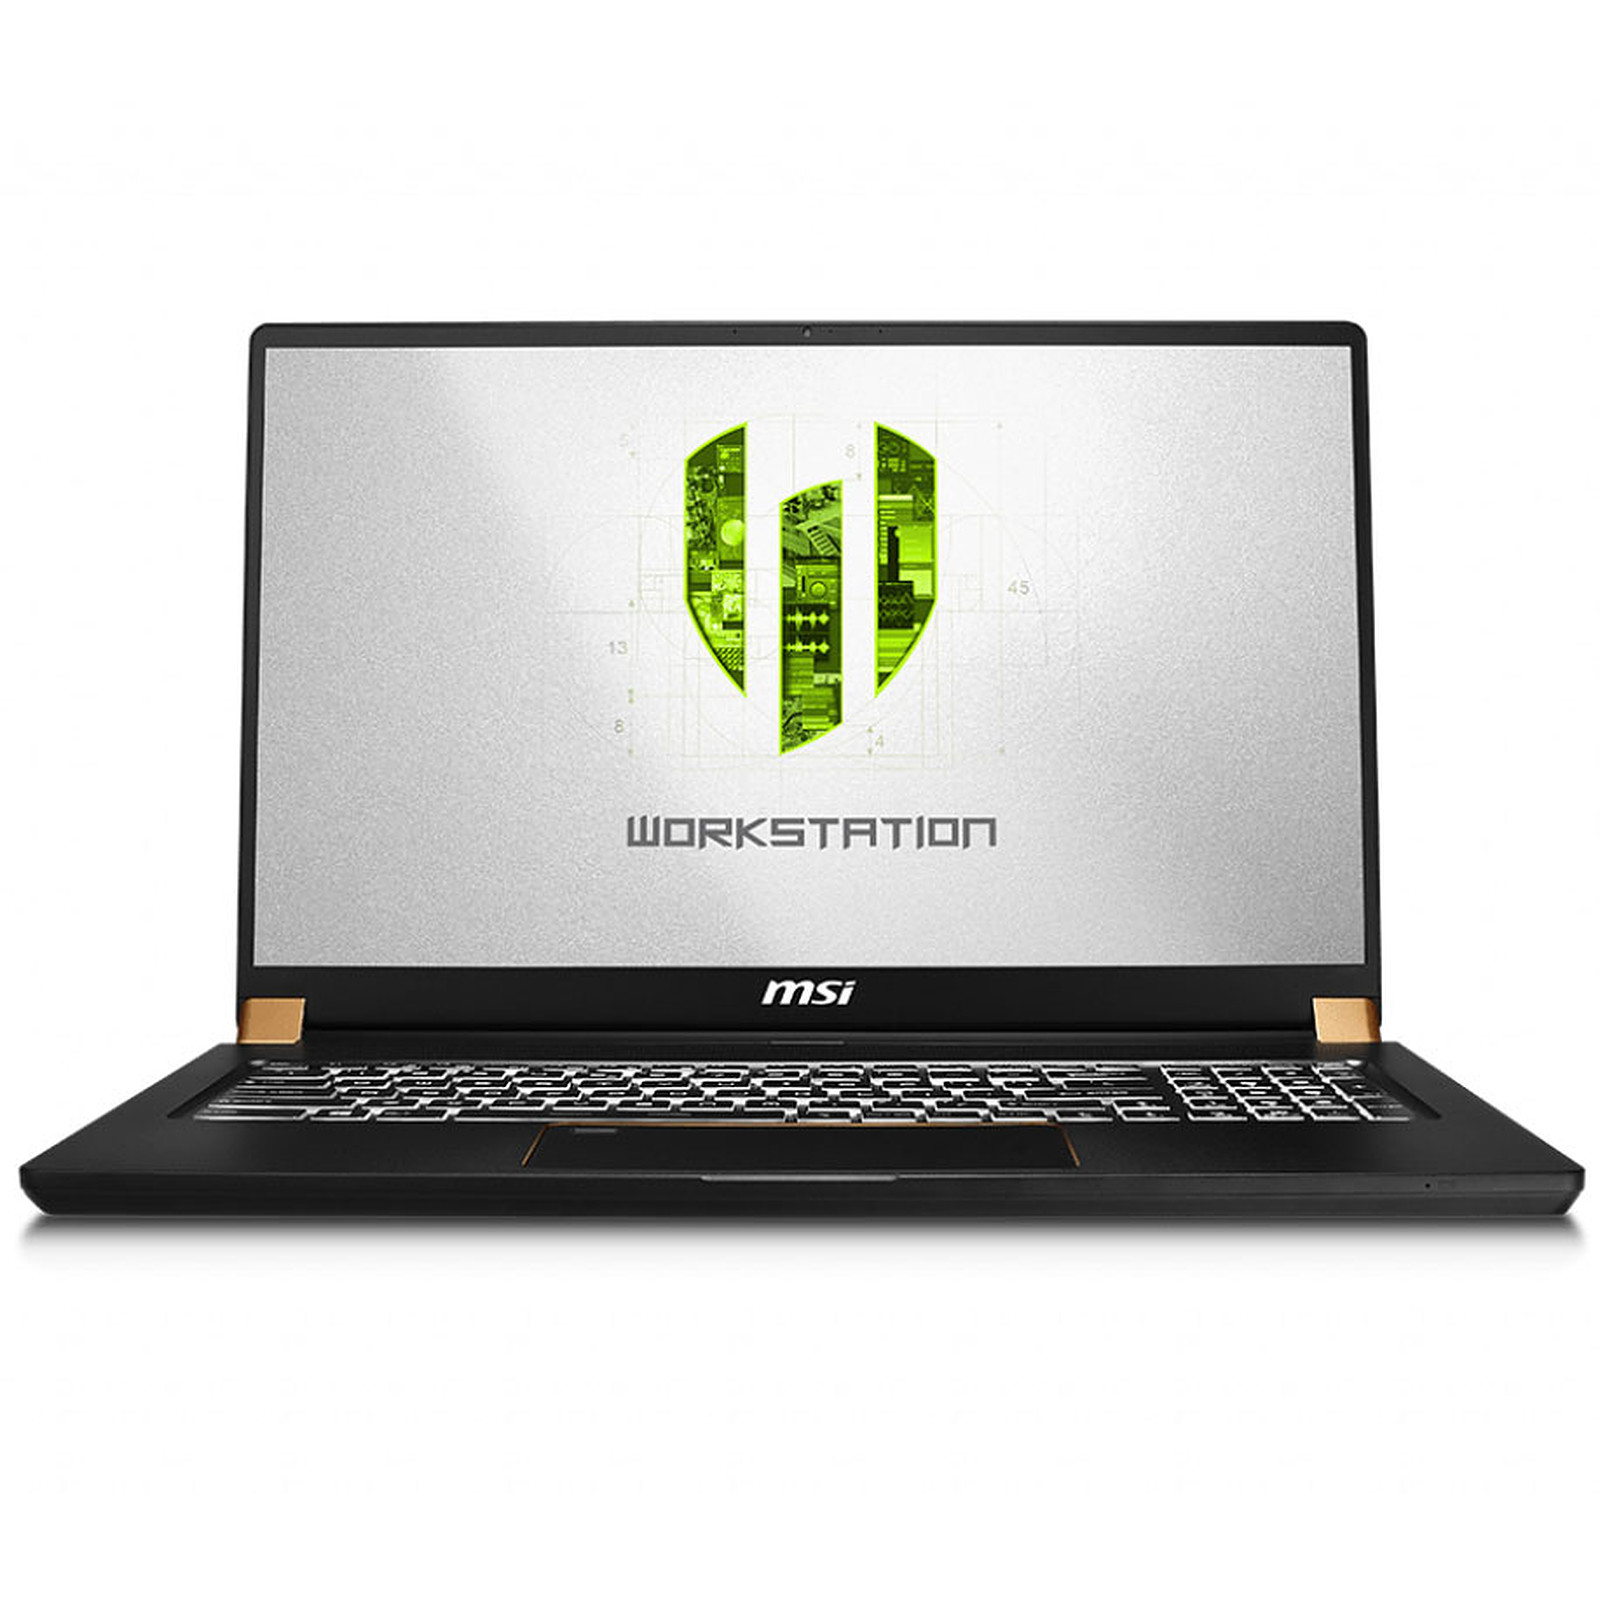 MSI WS75 9TL-628FR Workstation